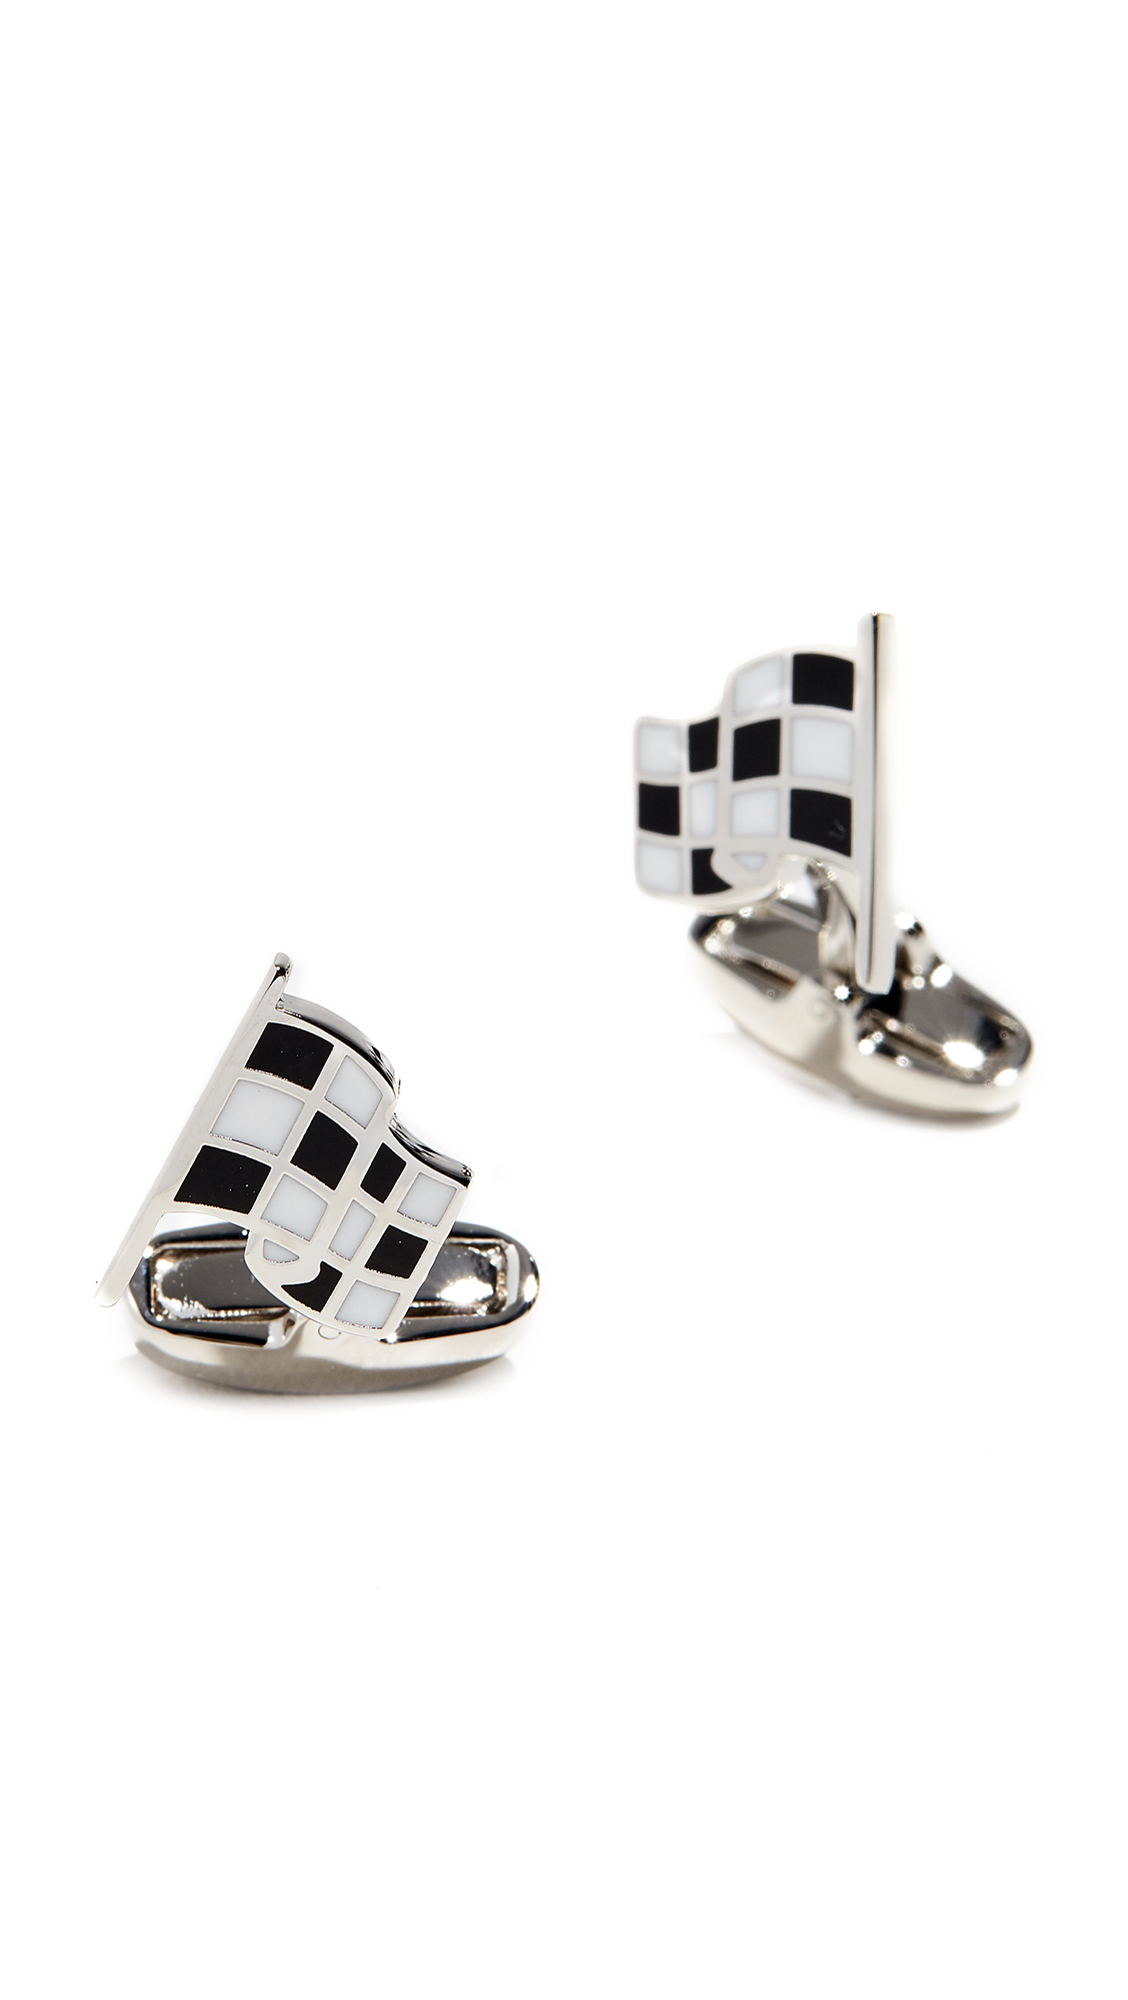 PAUL SMITH Checked Flag Silver-Tone And Enamel Cufflinks in Black/White